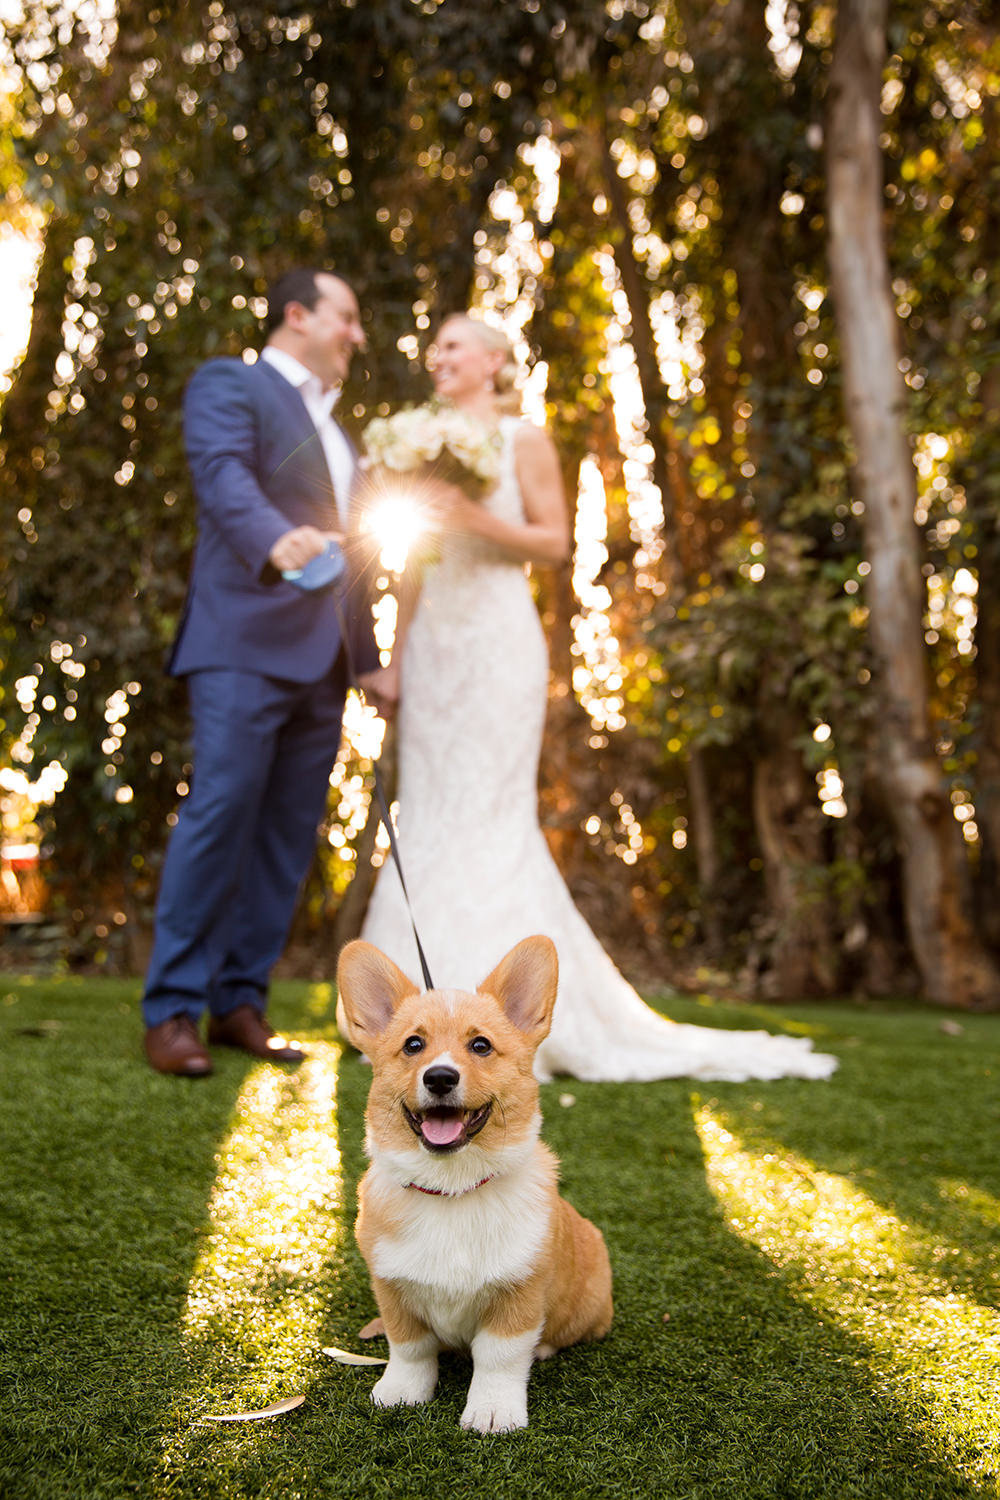 The cutest corgi you will ever see at a wedding